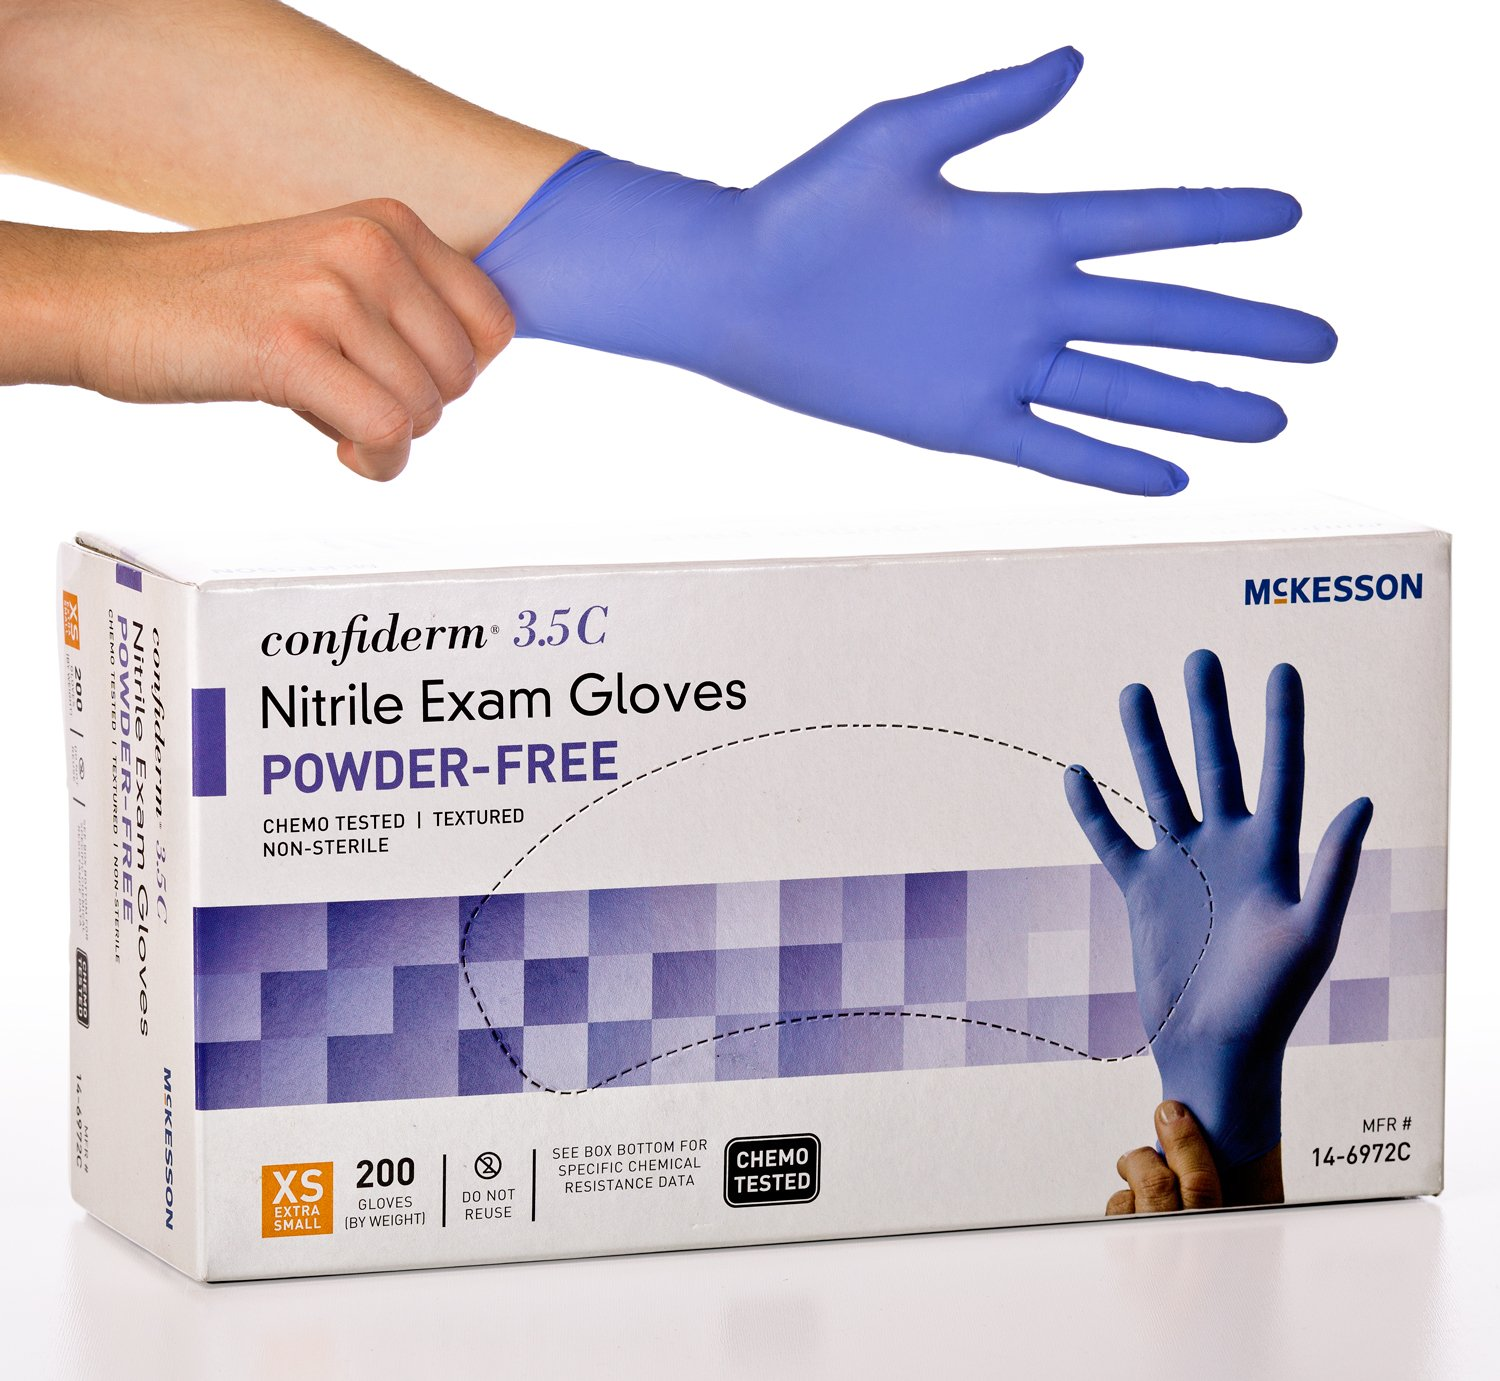 McKesson Confiderm 3.5C Nitrile Latex-Free XSM Exam Gloves, X-Small, Chemo Tested, Powder-Free, 200/BX